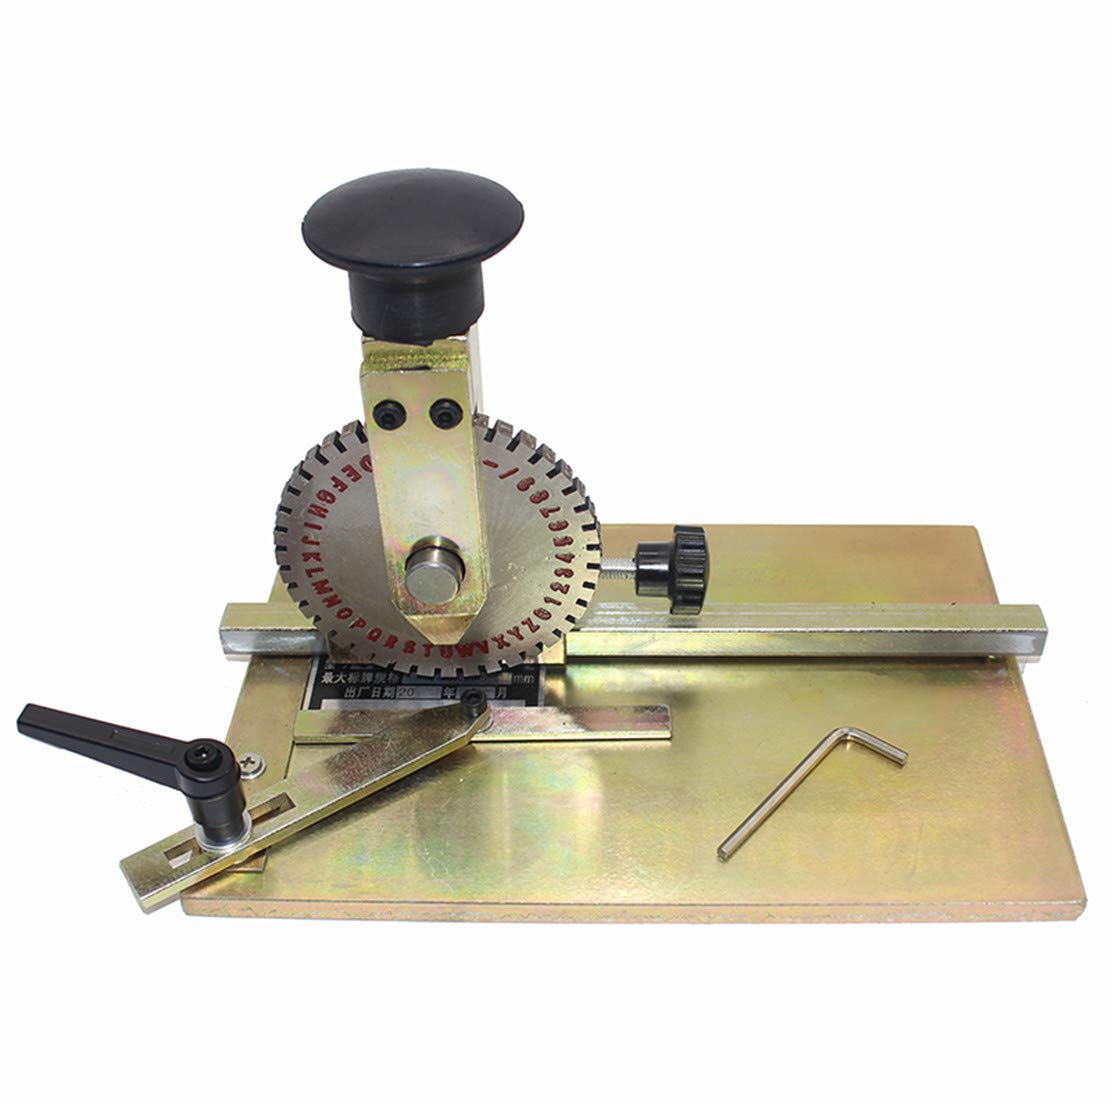 T-king Manual Marking Machine Deboss Embossing Machine -Dog Tag Metal Plate Stamping Embosser with 4mm Print Wheel by T-king